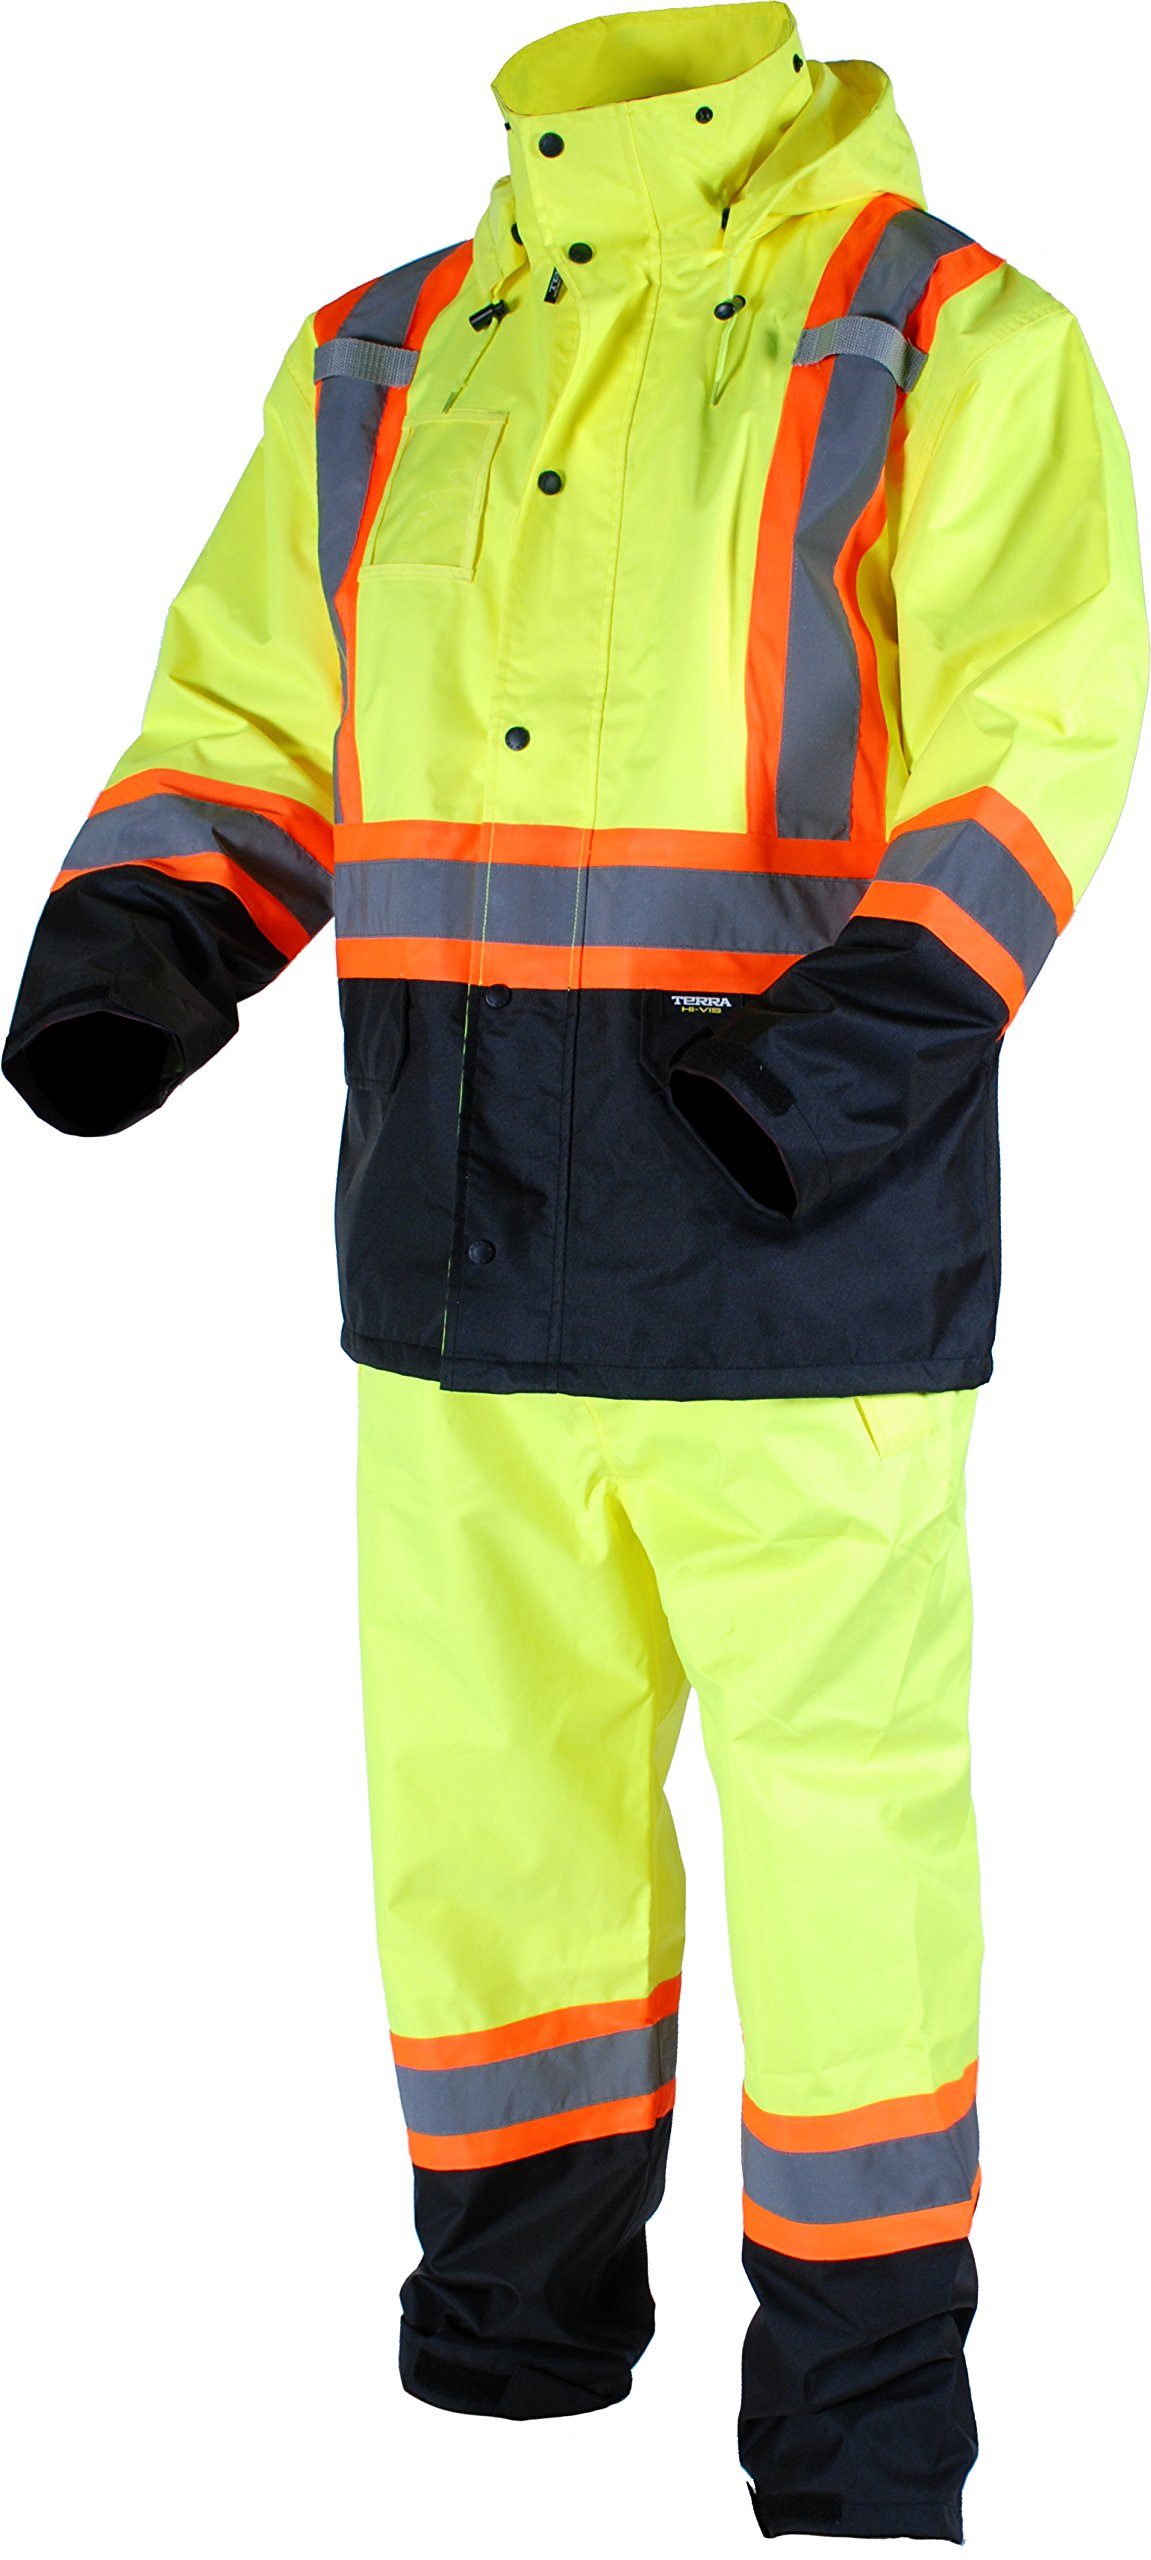 Terra 116520YL2XL High-Visibility Reflective Safety Rain suit, 2XL, Yellow